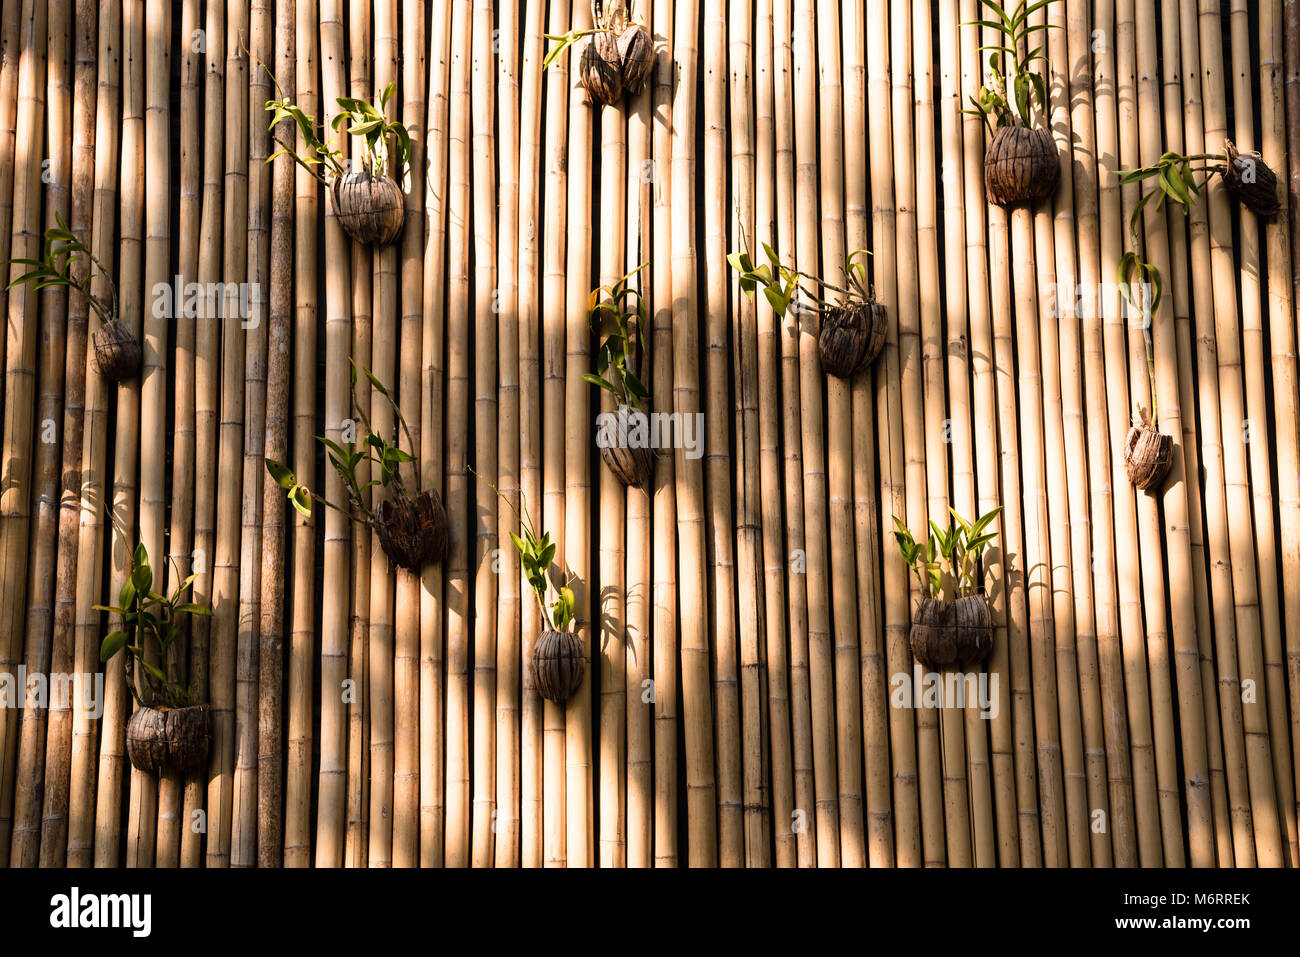 Bamboo Architecture Stock Photos & Bamboo Architecture Stock